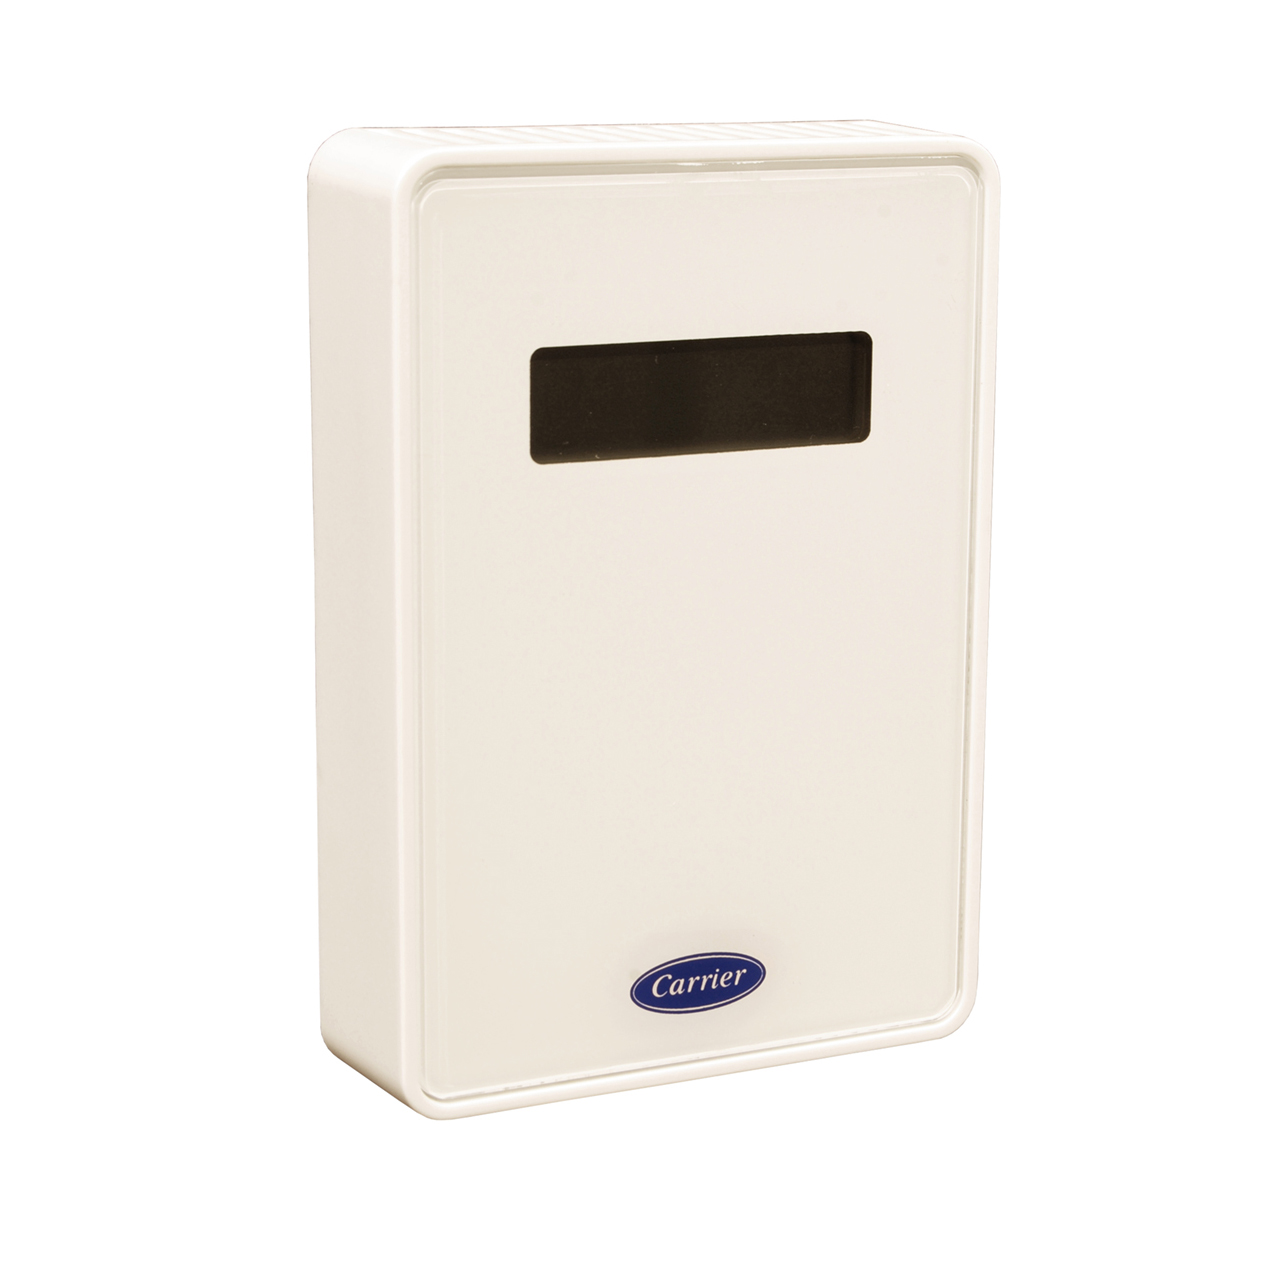 carrier-33ZCSPTCO2LCD-01-indoor-air-quality-carbon-dioxide-sensor-with-lcd